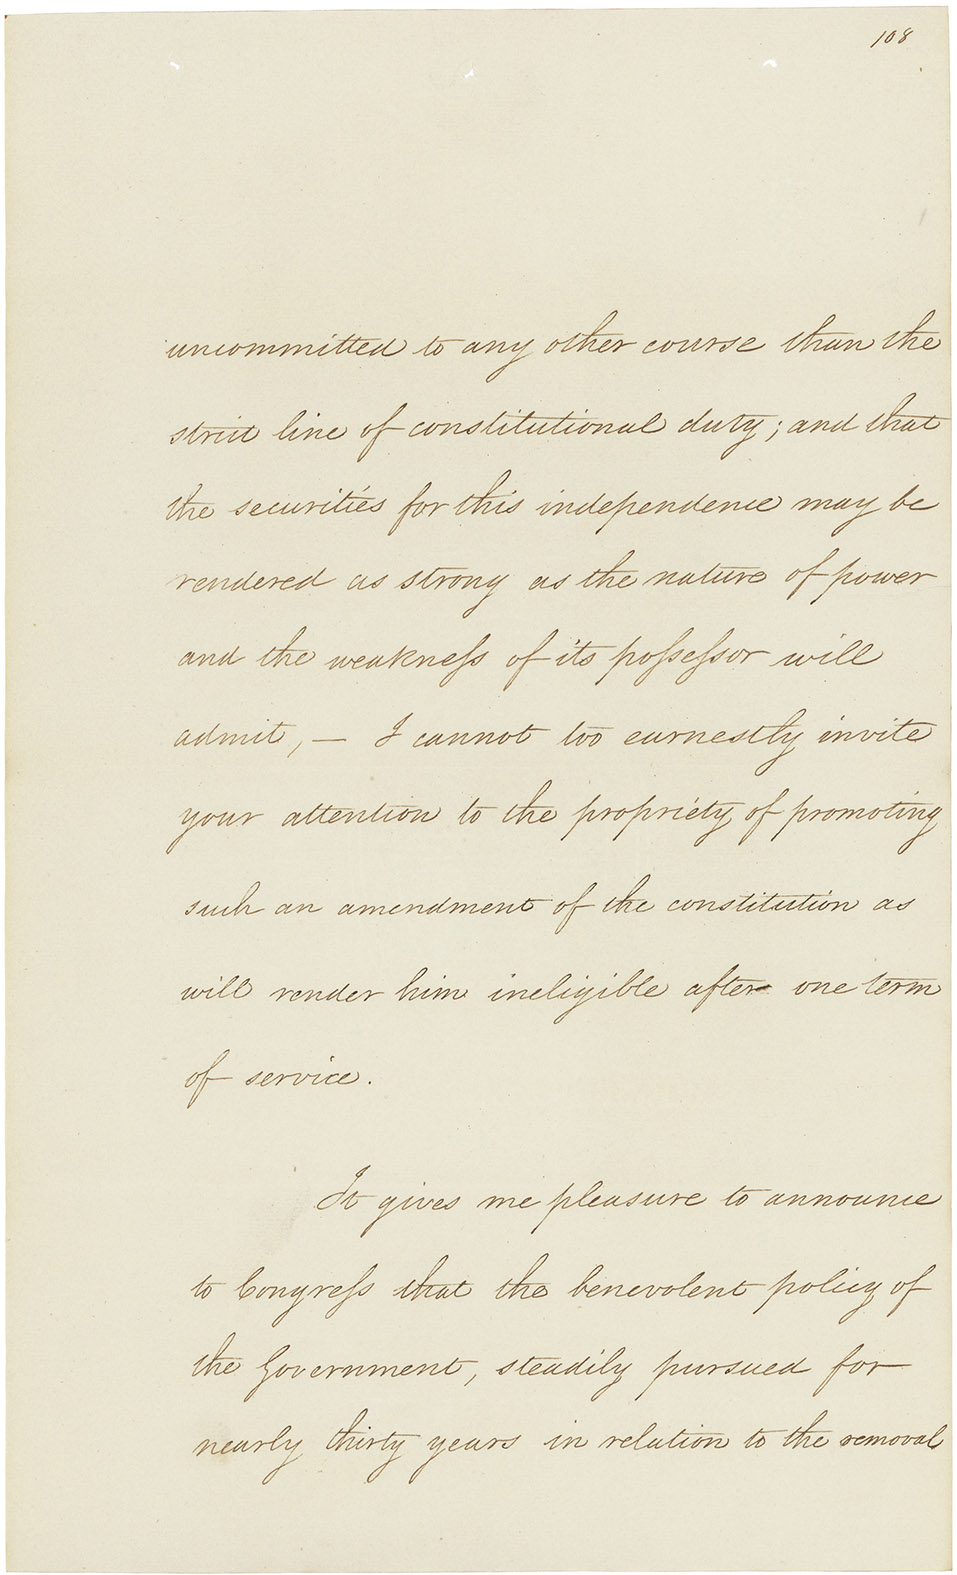 Andrew Jackson Message to Congress, December 6, 1830 (Records of the United States Senate, RG 46)